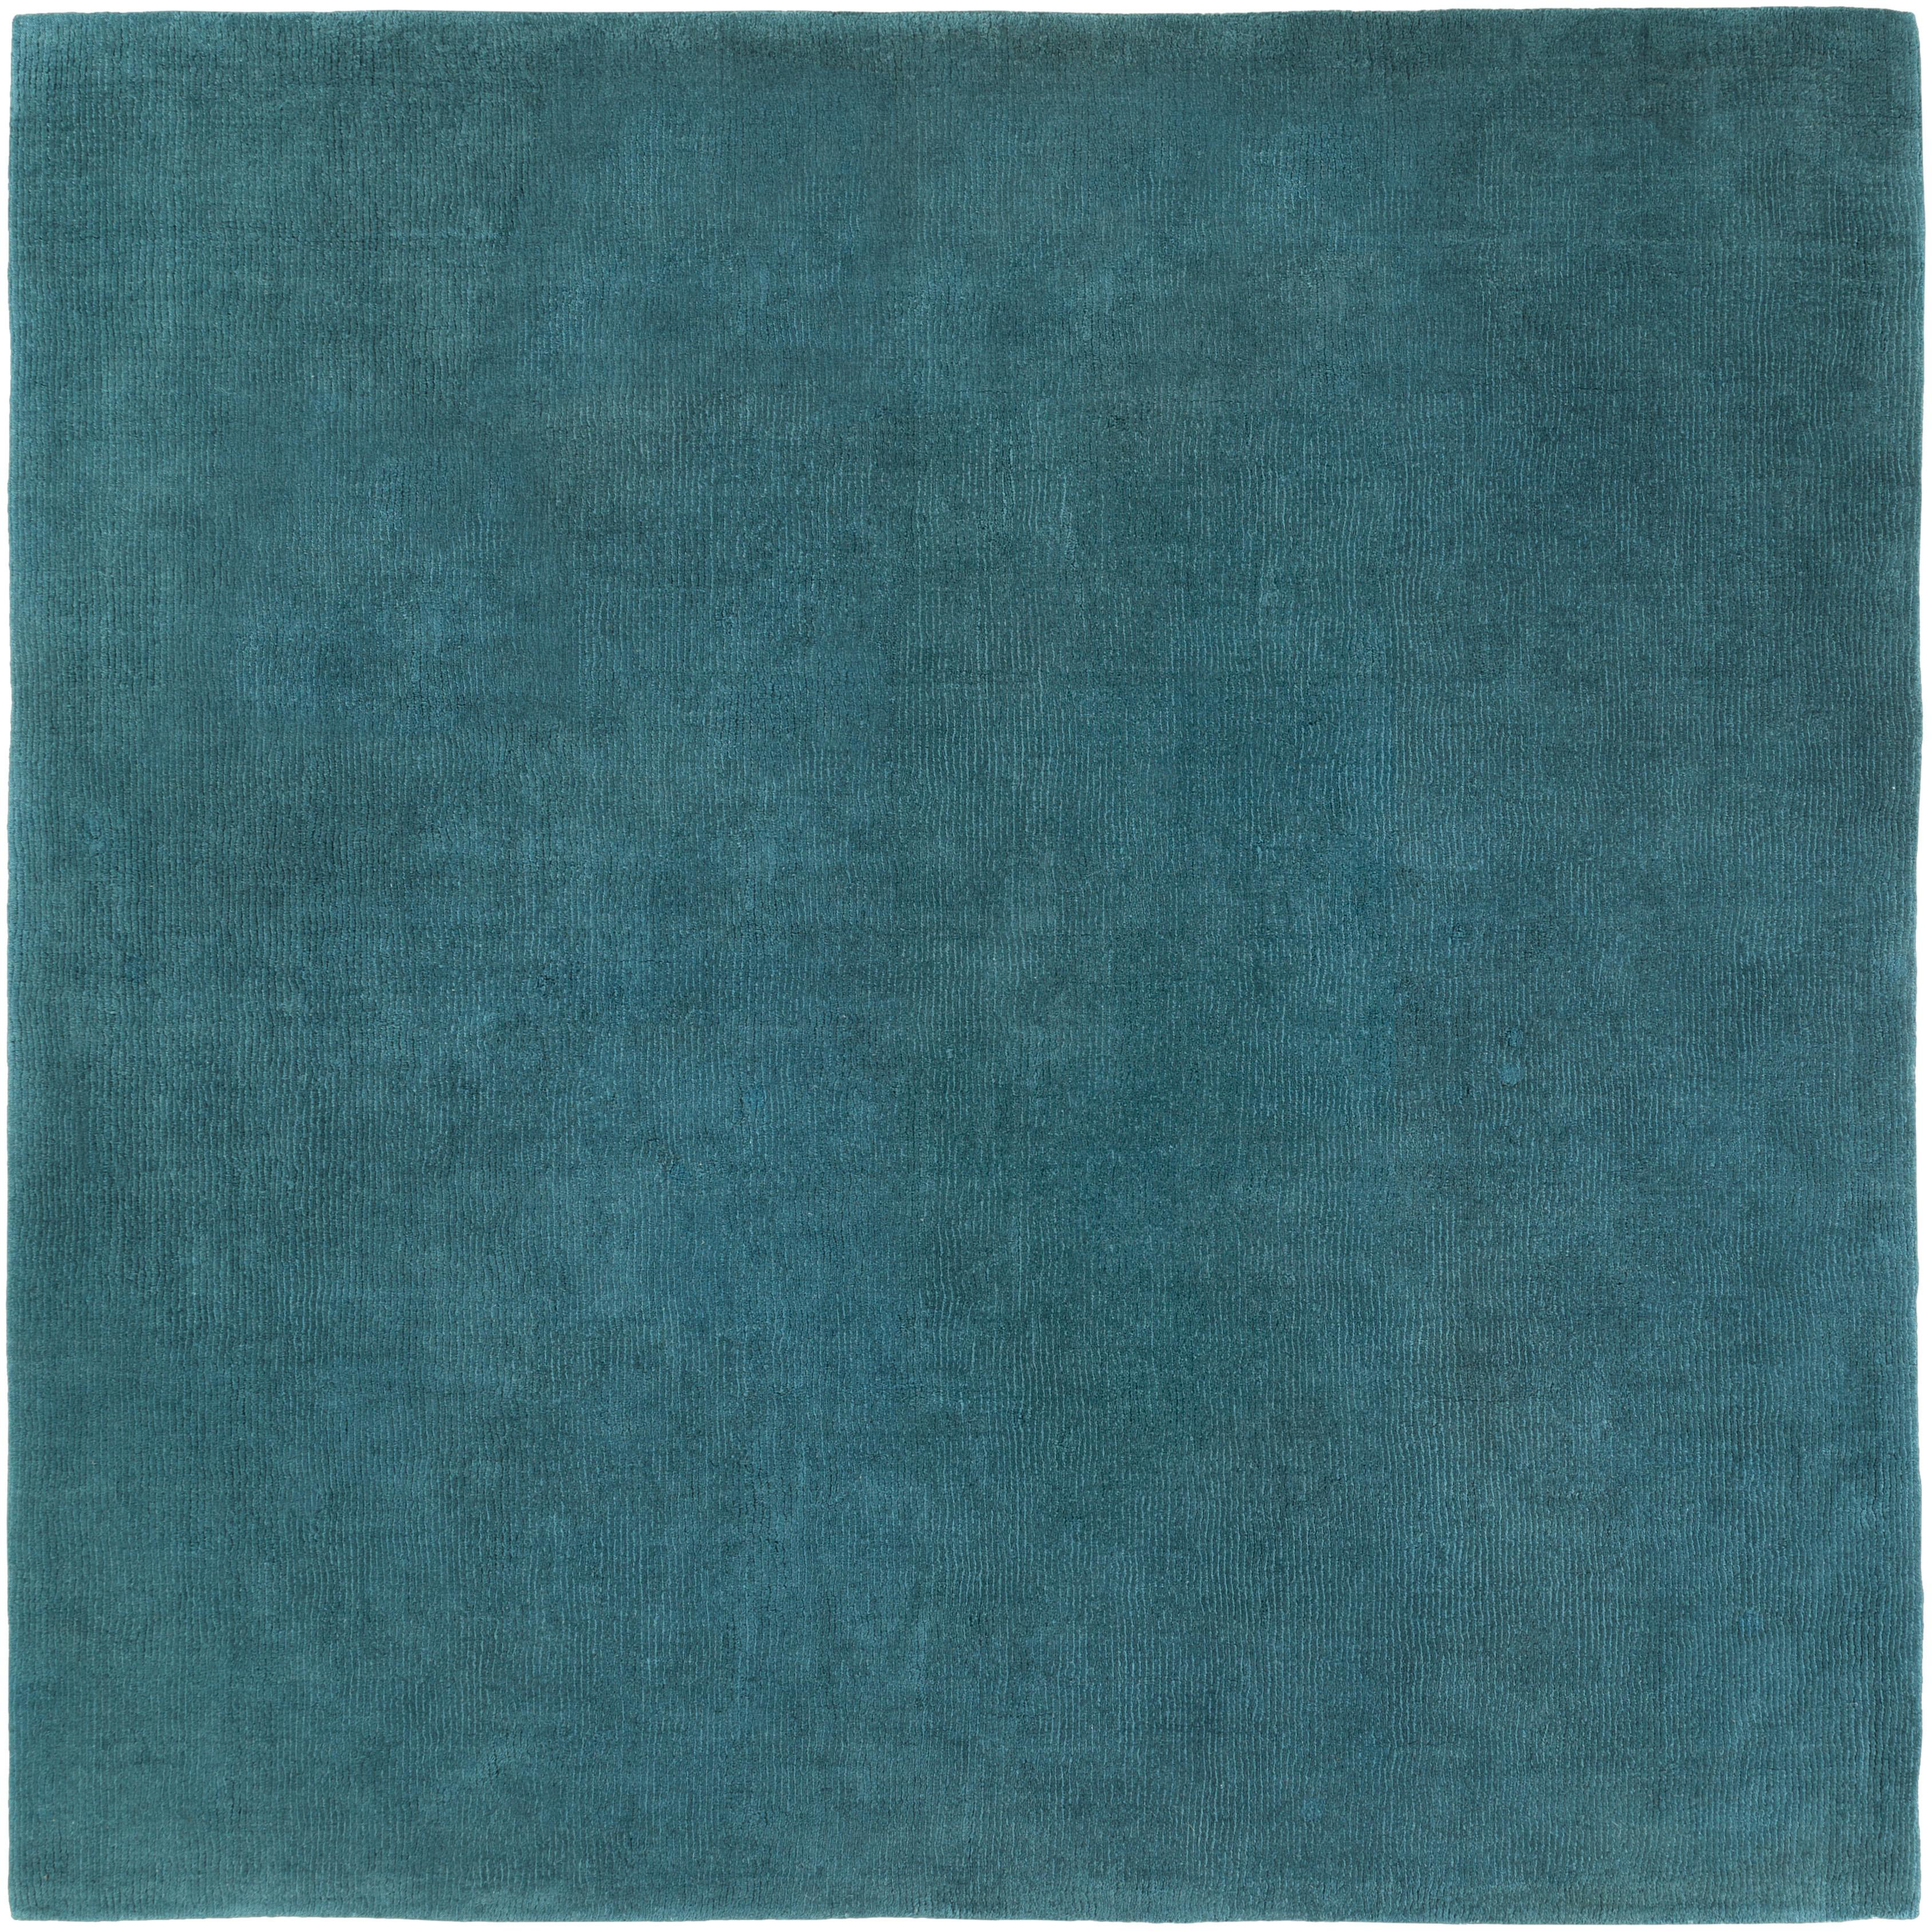 Mystique 8' Square by Surya at SuperStore